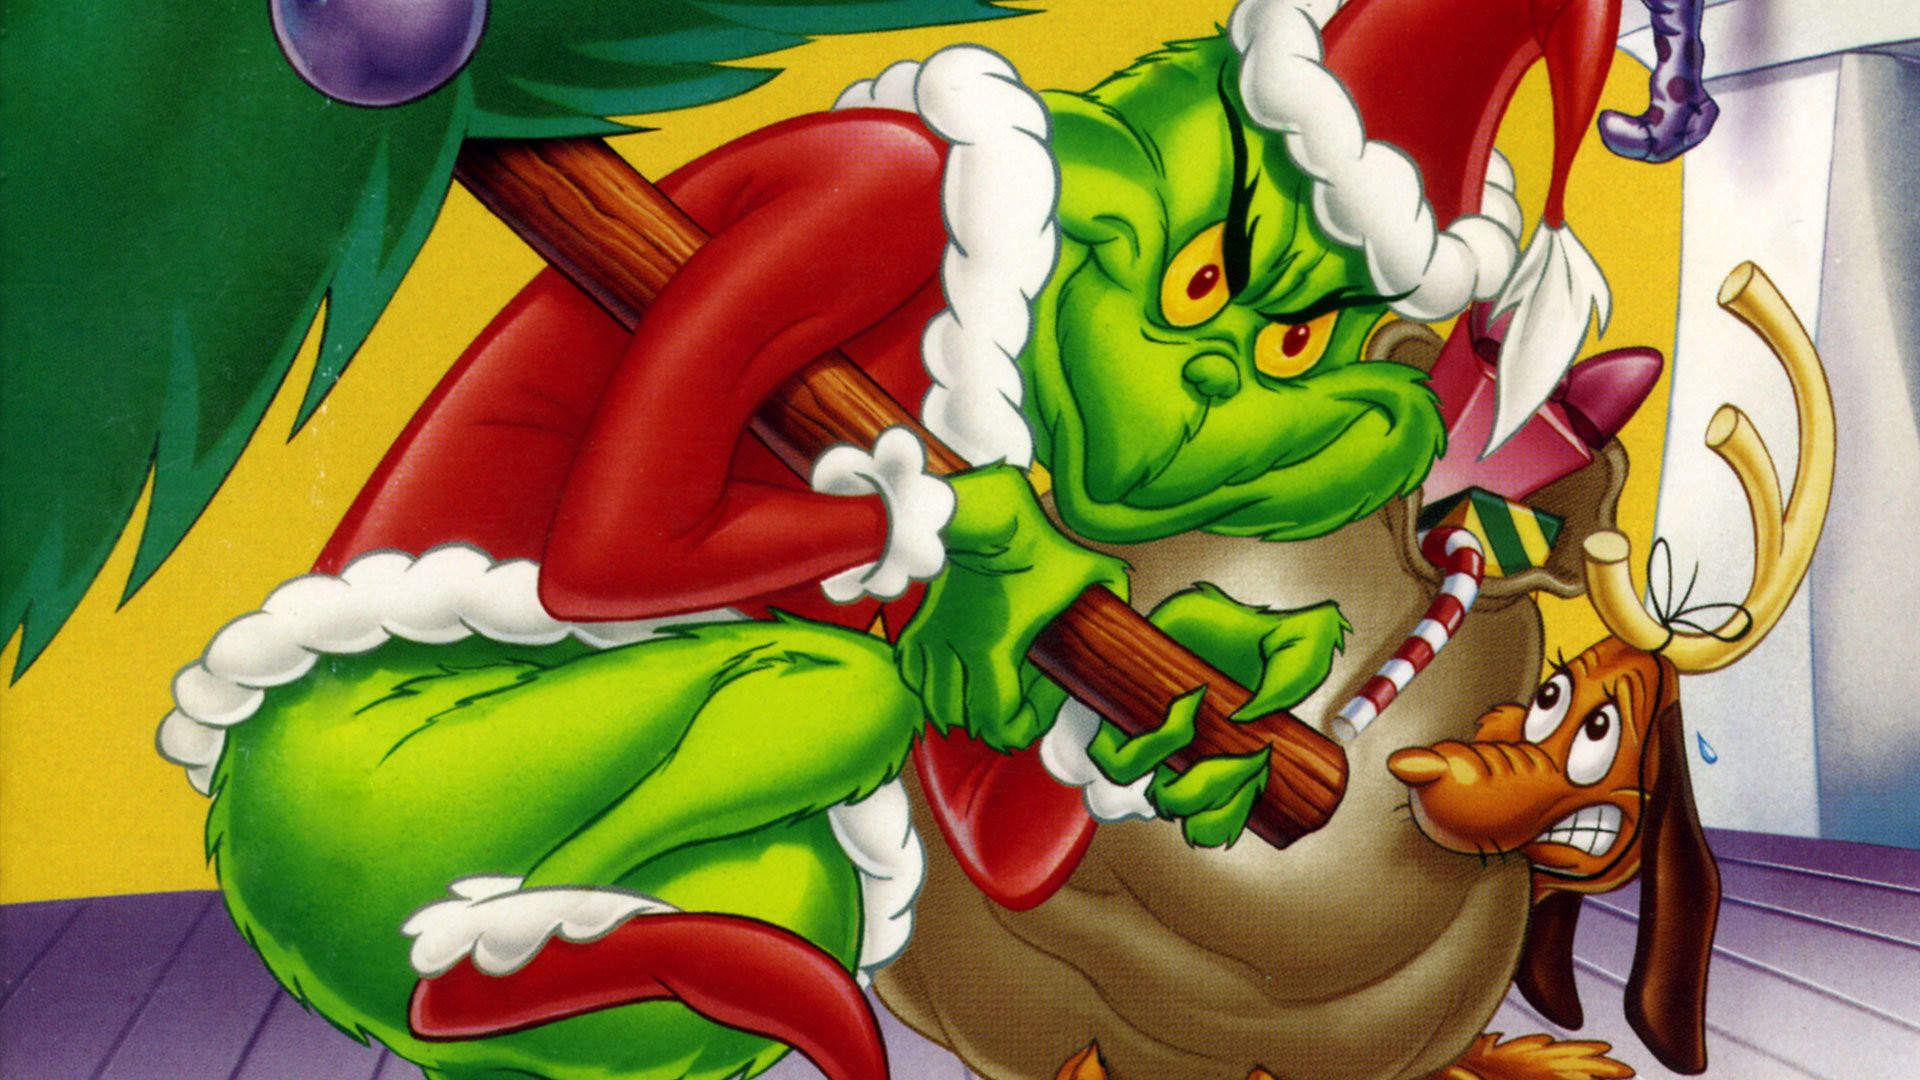 Grinch Wallpapers Download XR2ESVF   4USkY 1920x1080